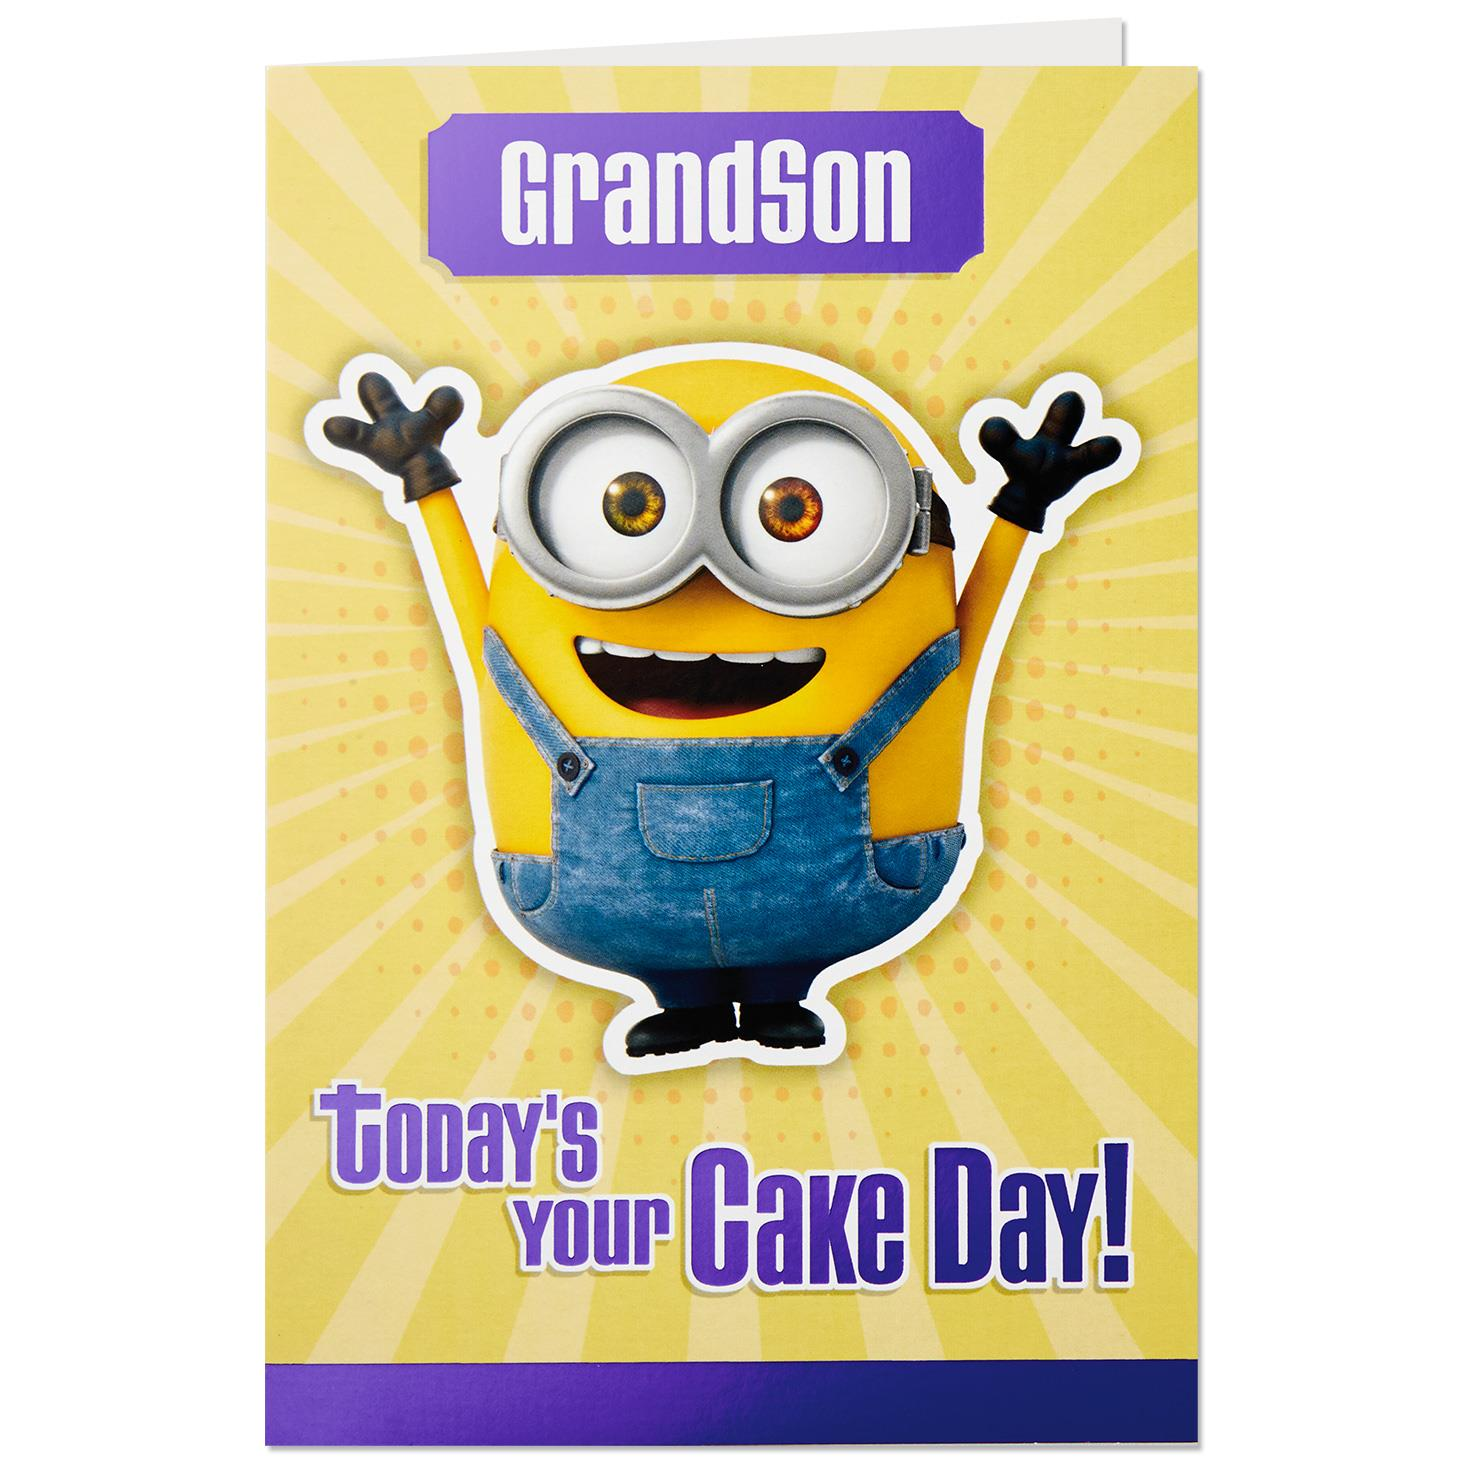 Despicable Me Minions Cake Day Birthday Card For Grandson Greeting